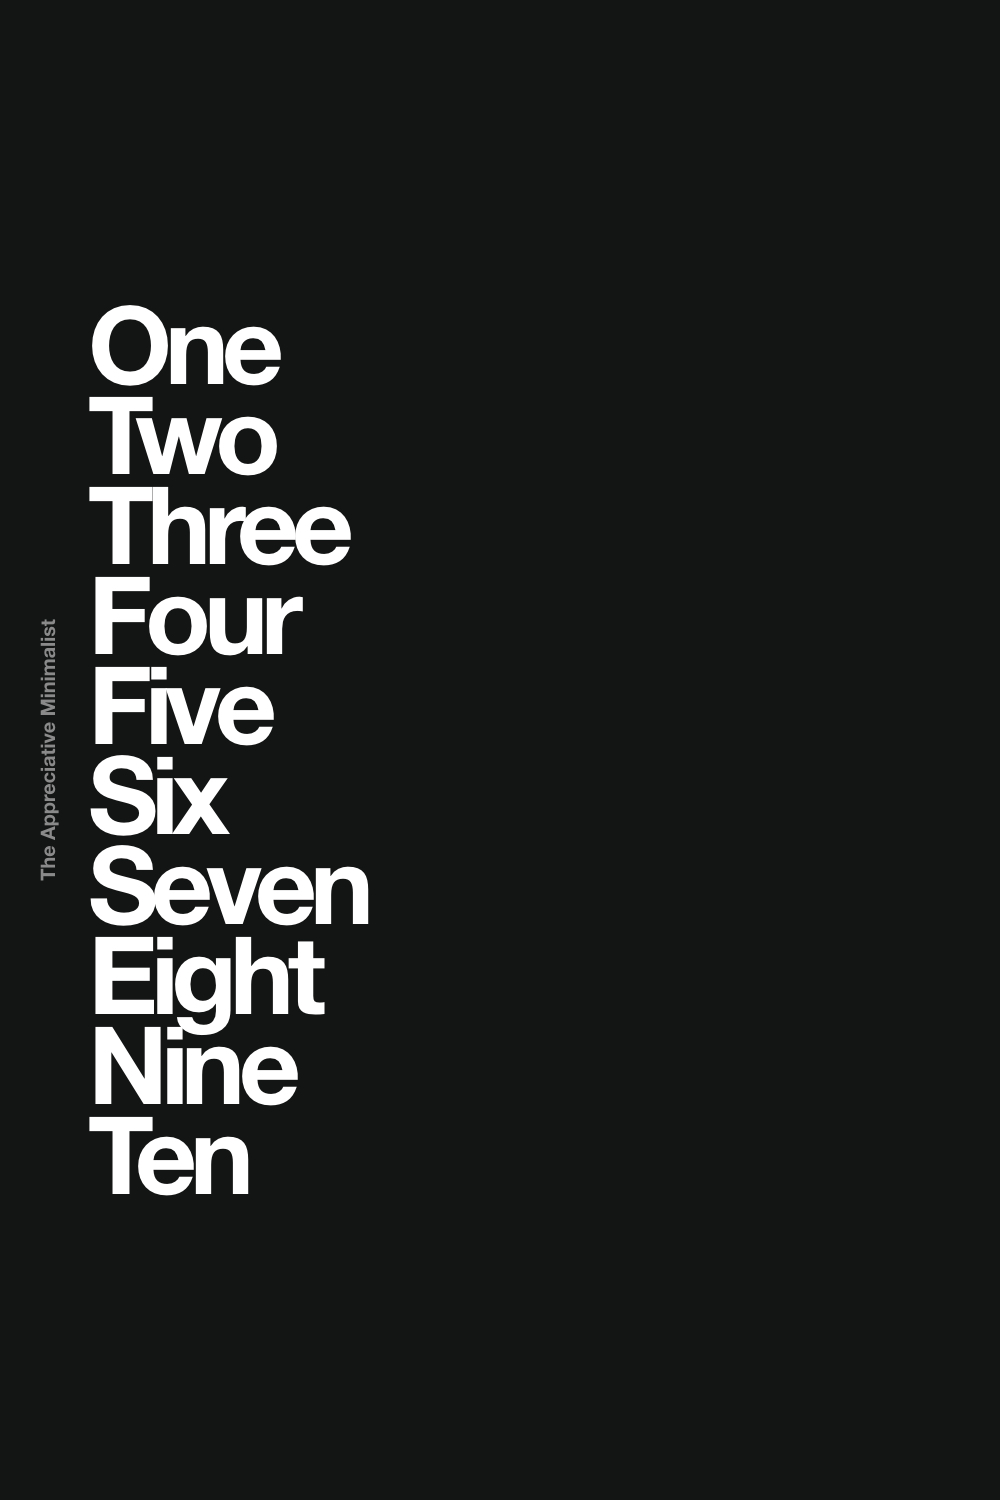 One Two Three Four Five Six Seven Eight Nine Ten